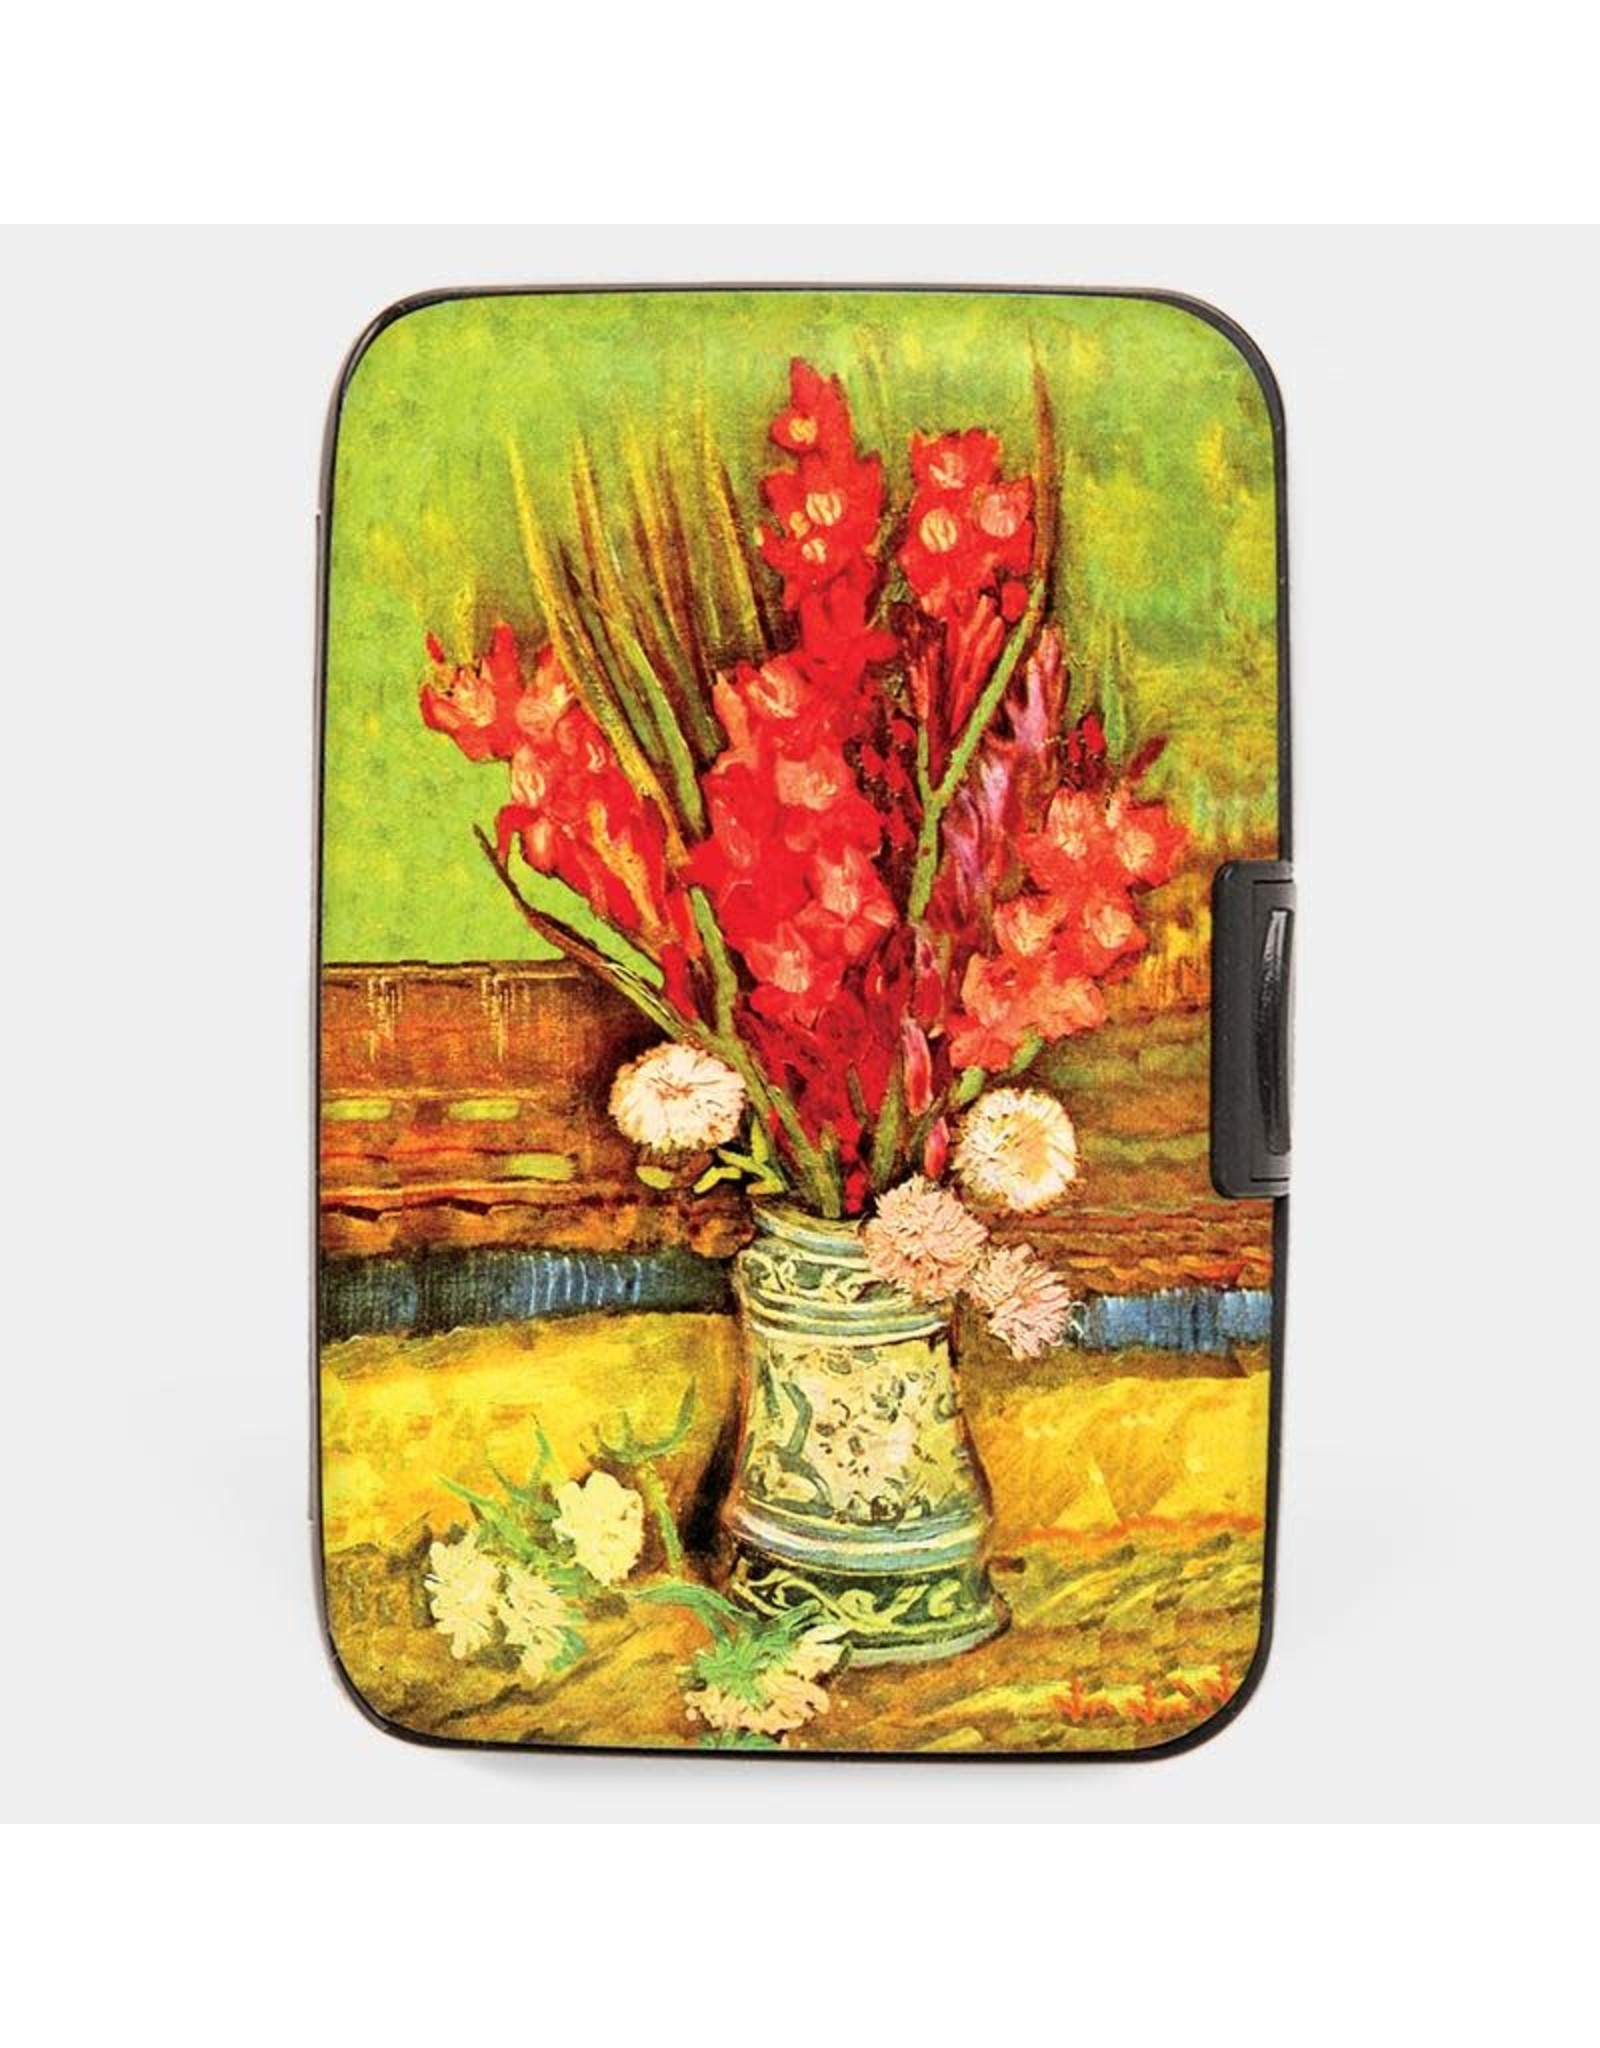 Monarque Armored Wallet - Van Gogh - Red Gladioli